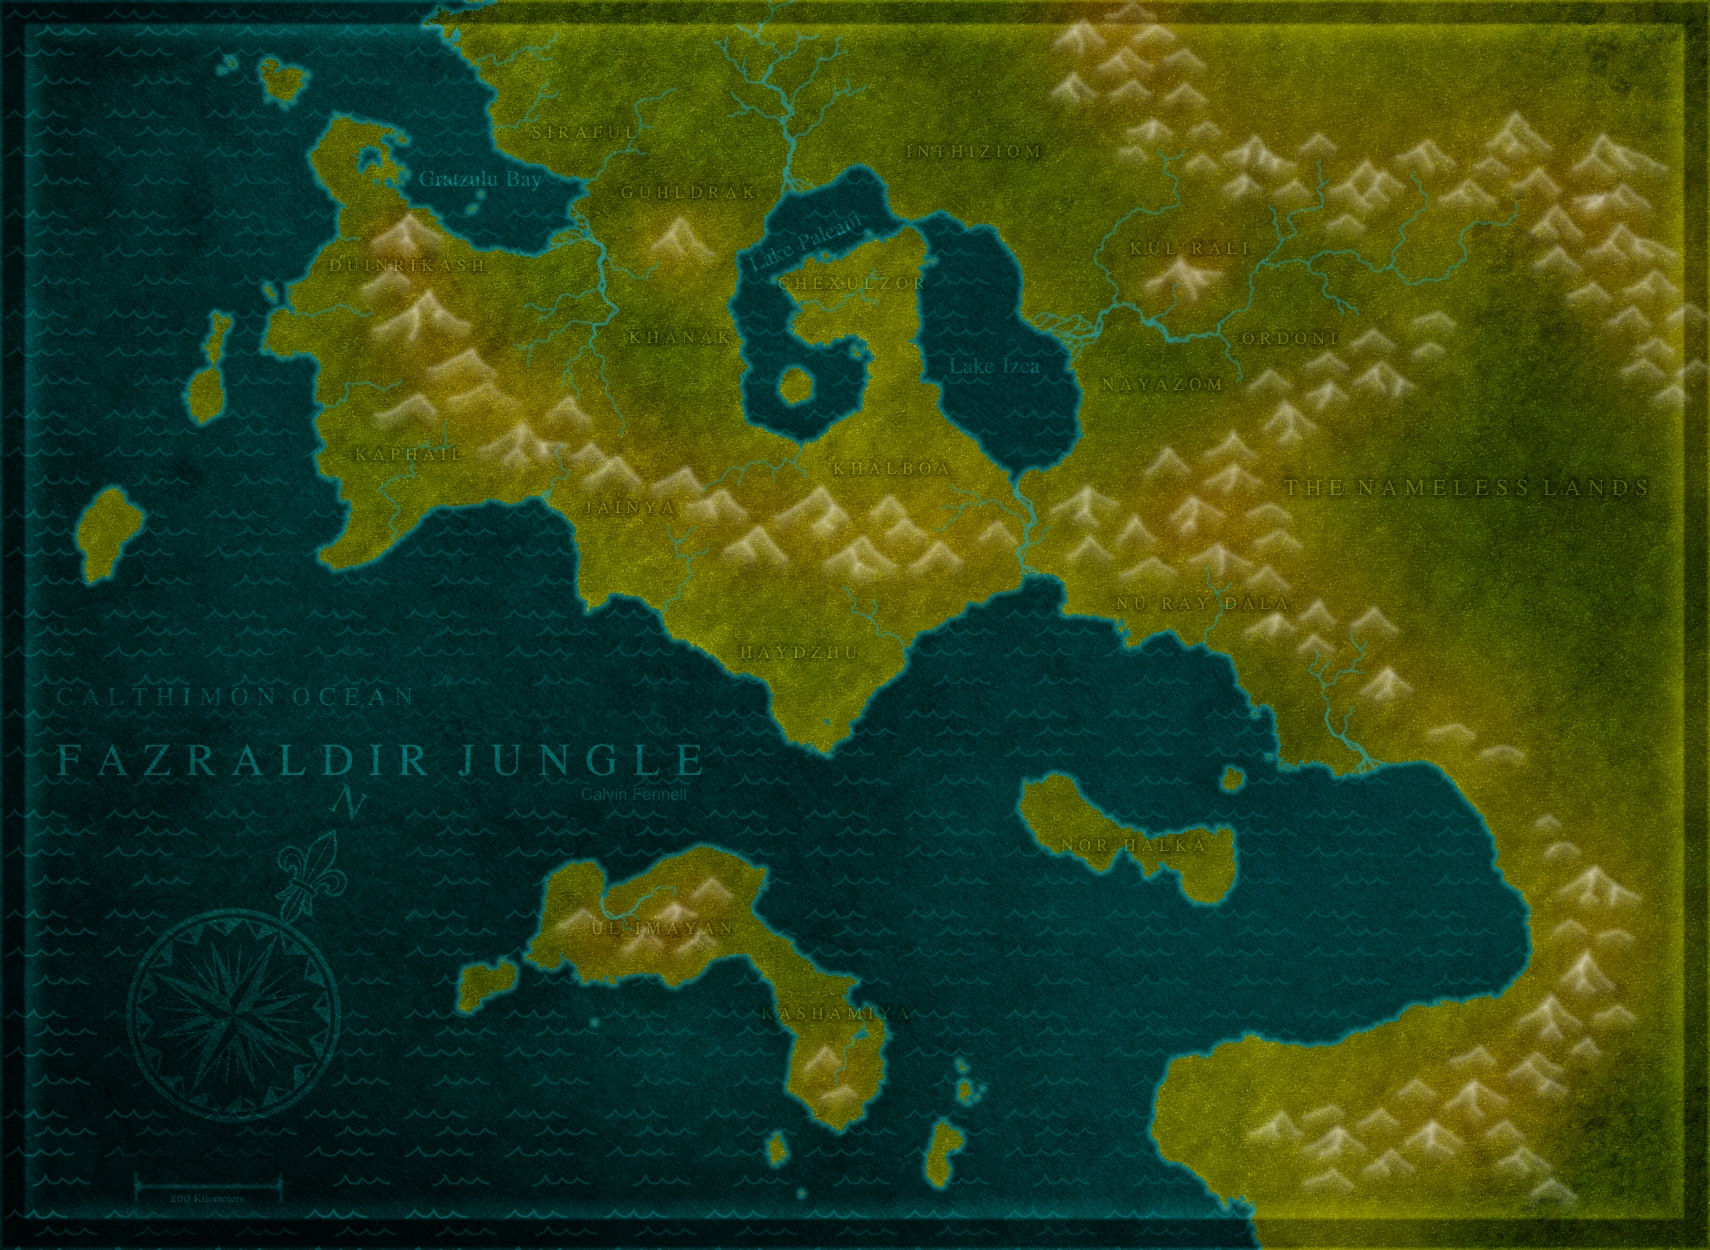 Fazraldir Jungle